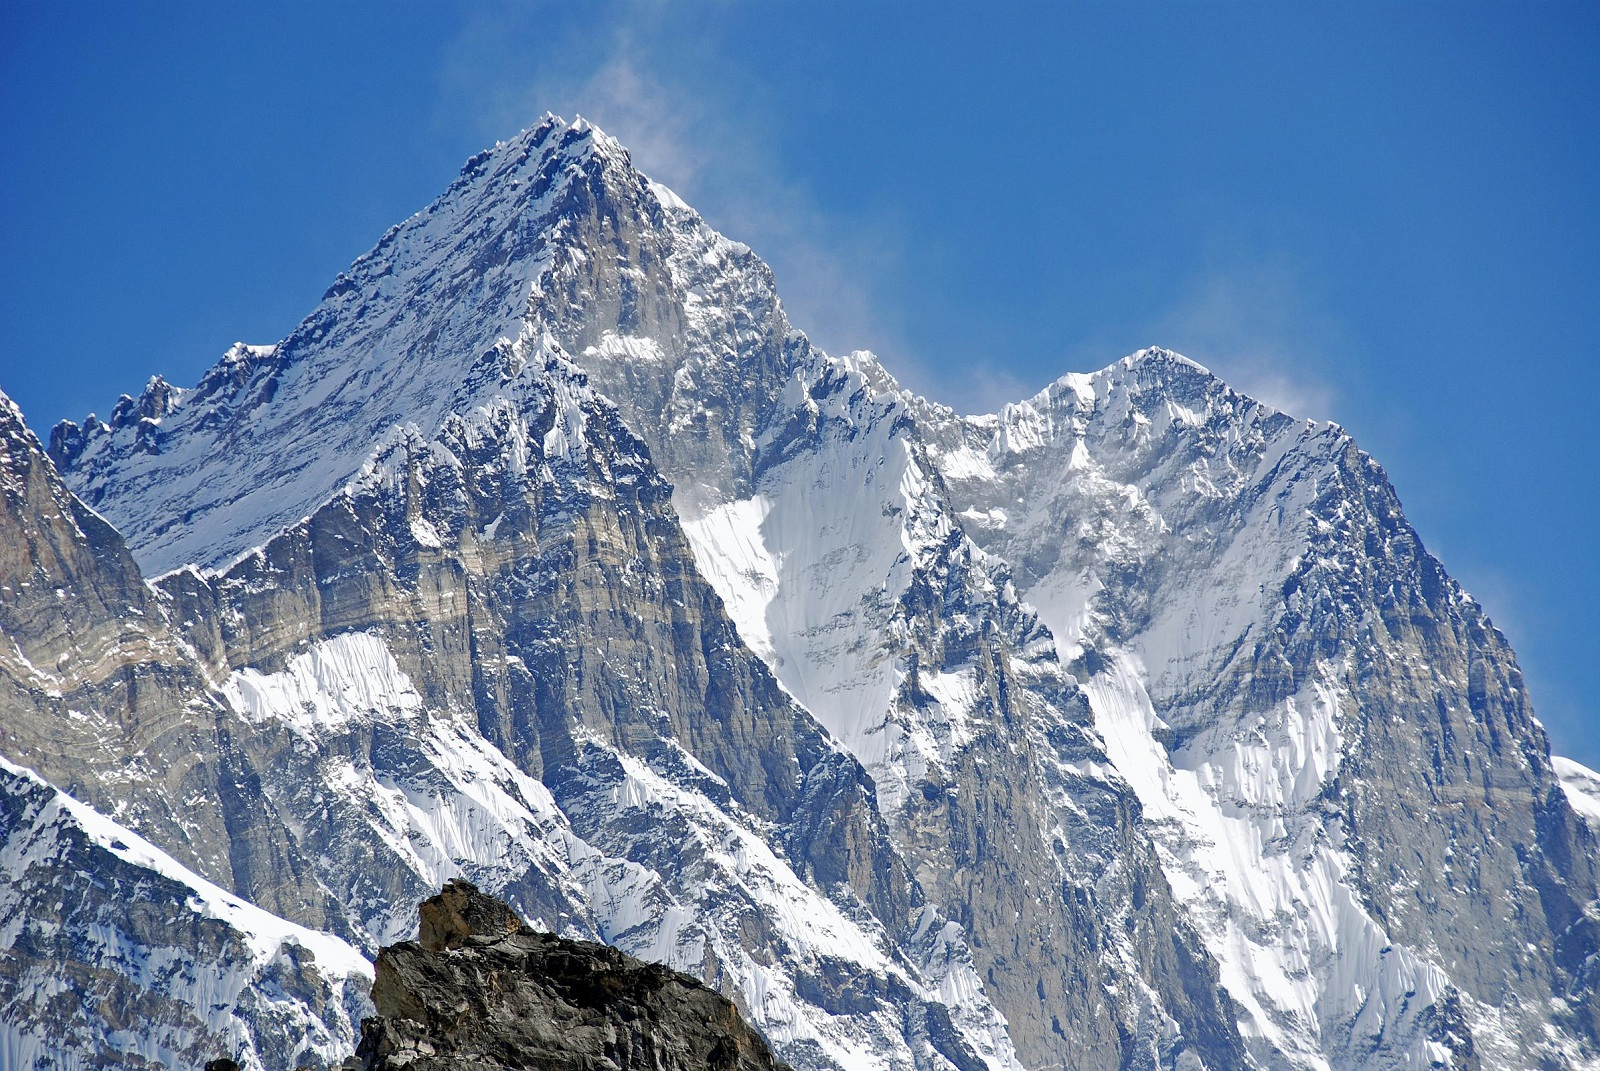 Tallest Mountains, Mount Everest, Lhotse, West face closeup